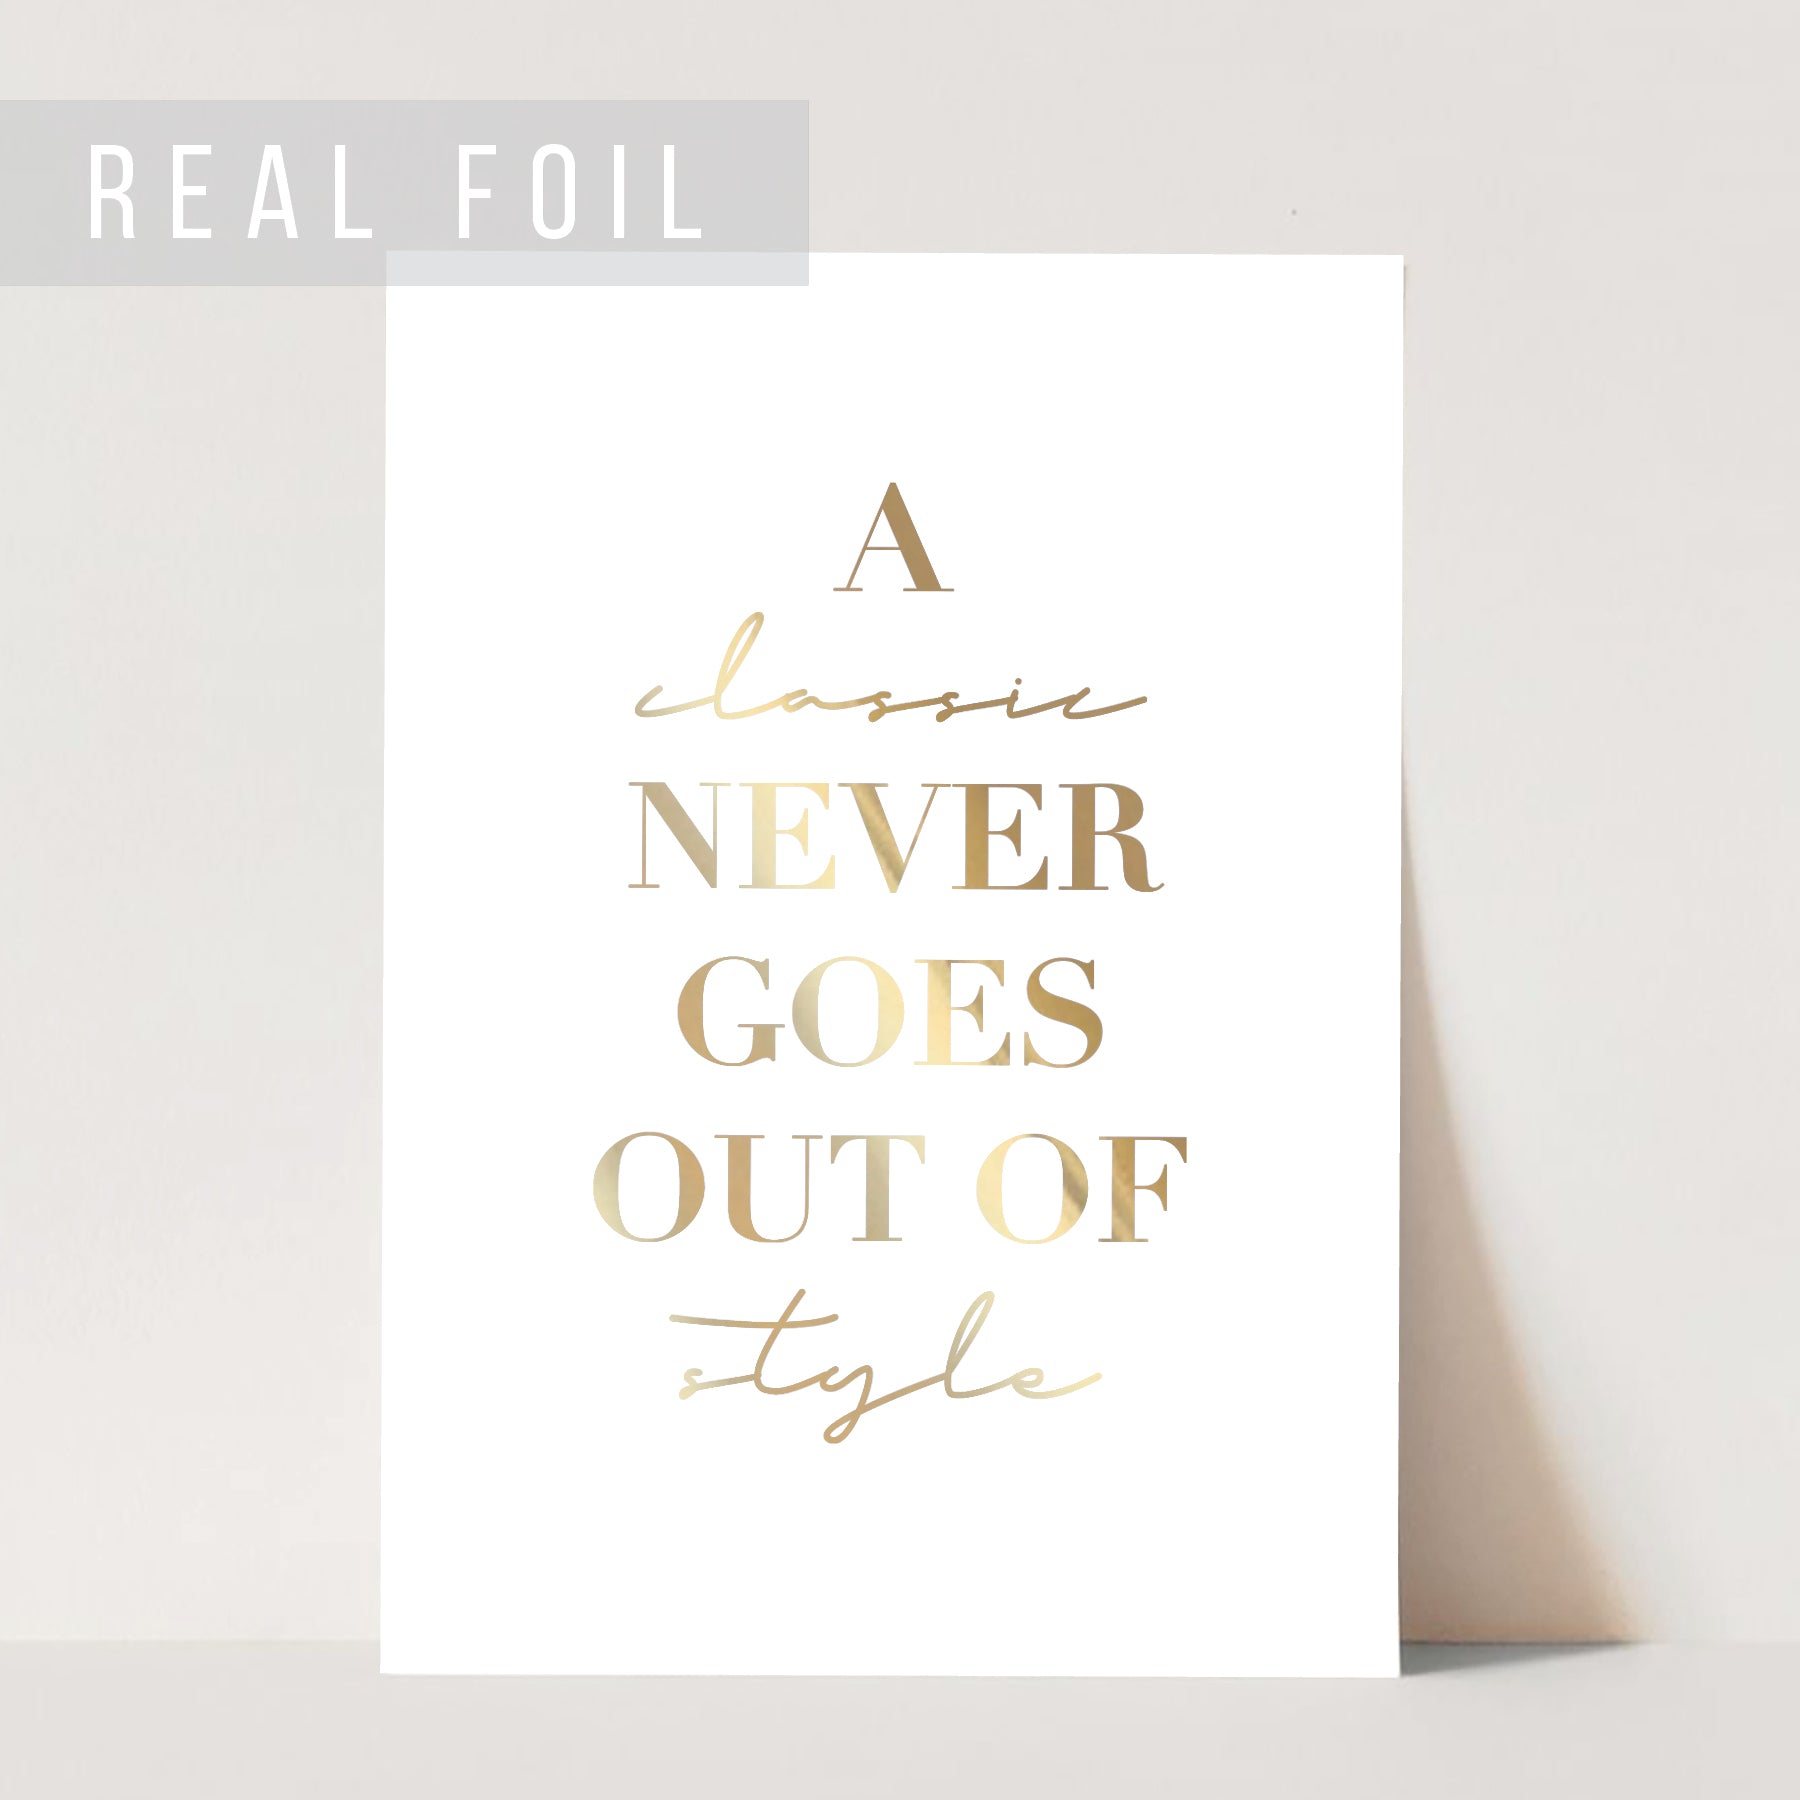 A Classic Never Goes Out of Style Foiled Art Print